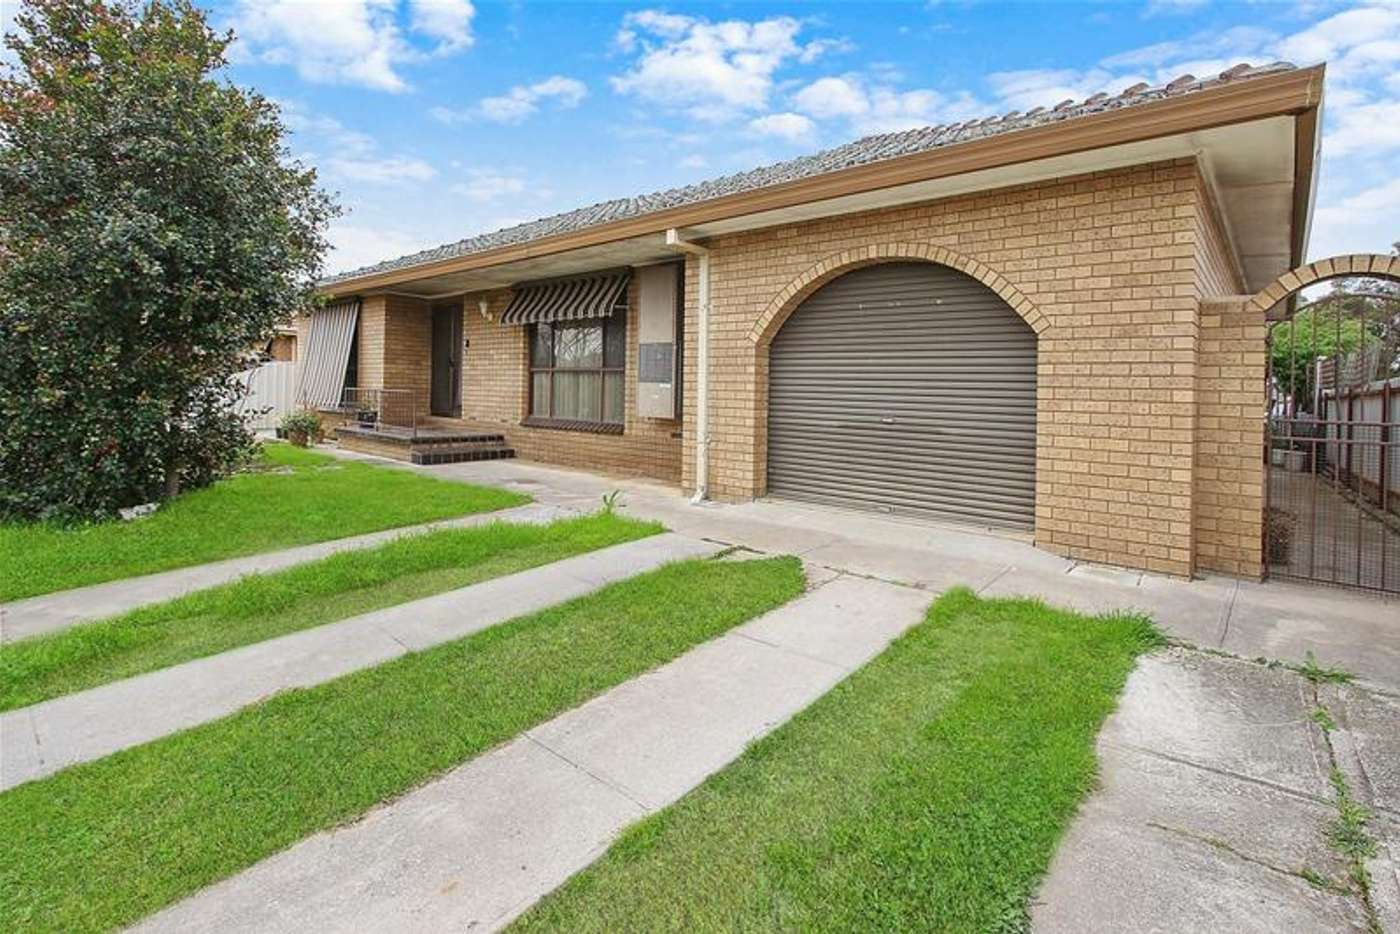 Main view of Homely house listing, 18 Roseland Road, Wodonga VIC 3690